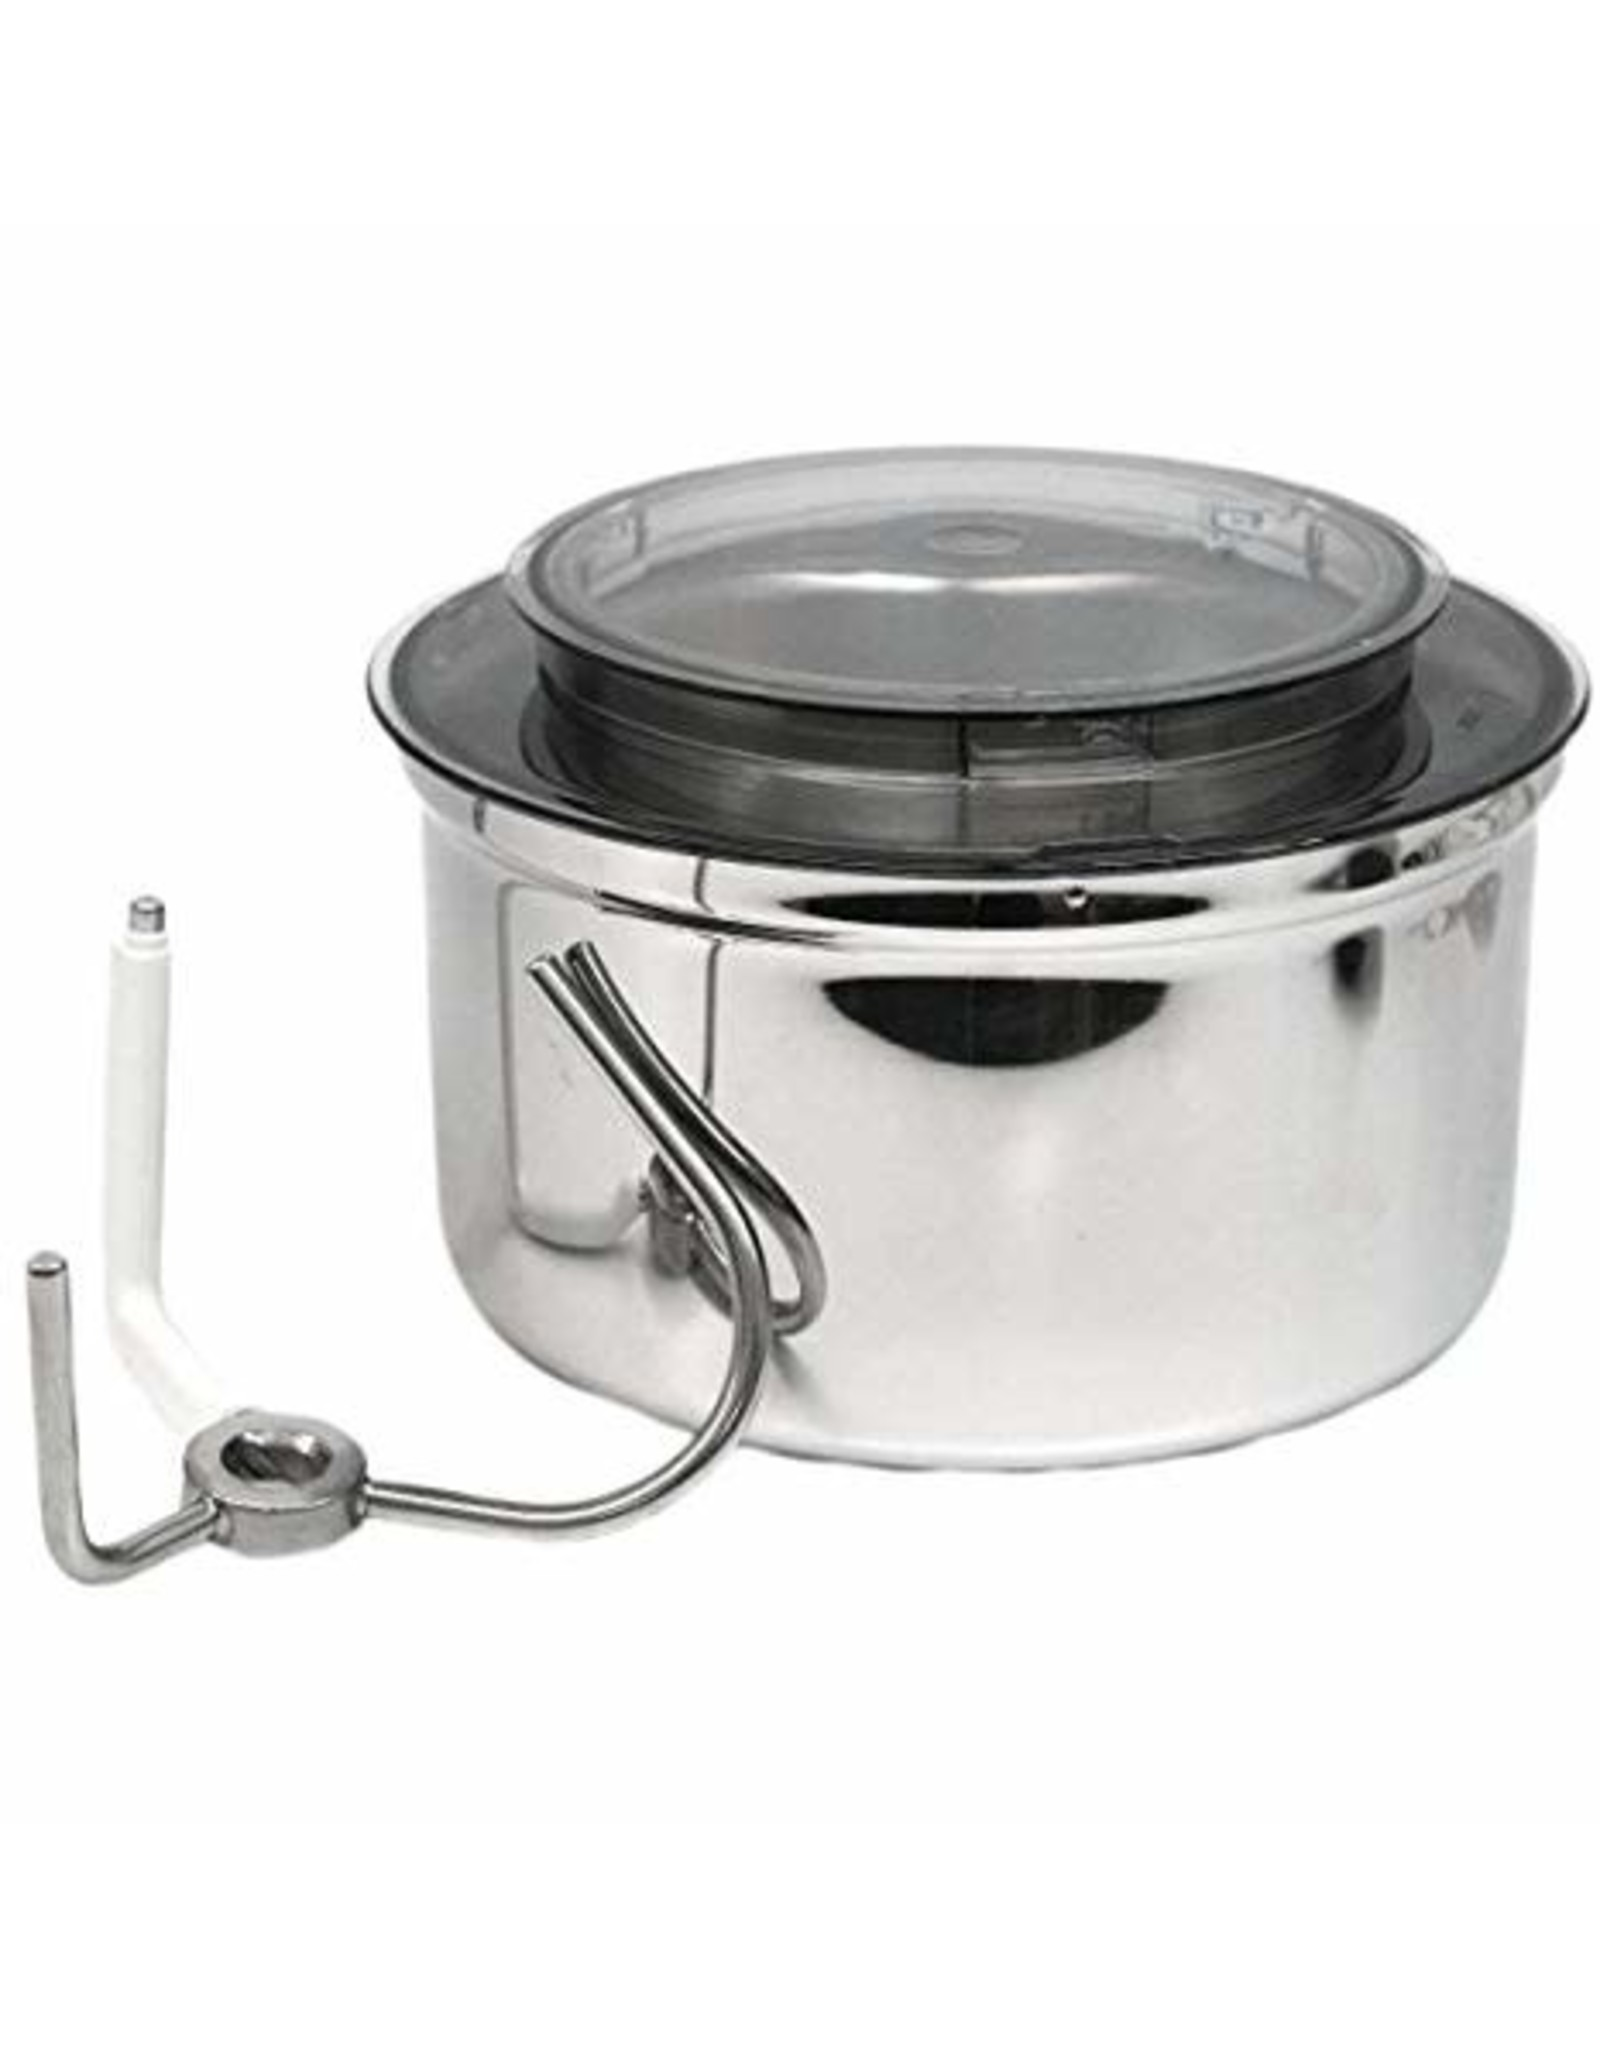 Bosch Stainless Steel Bowl, MUZ6ER1